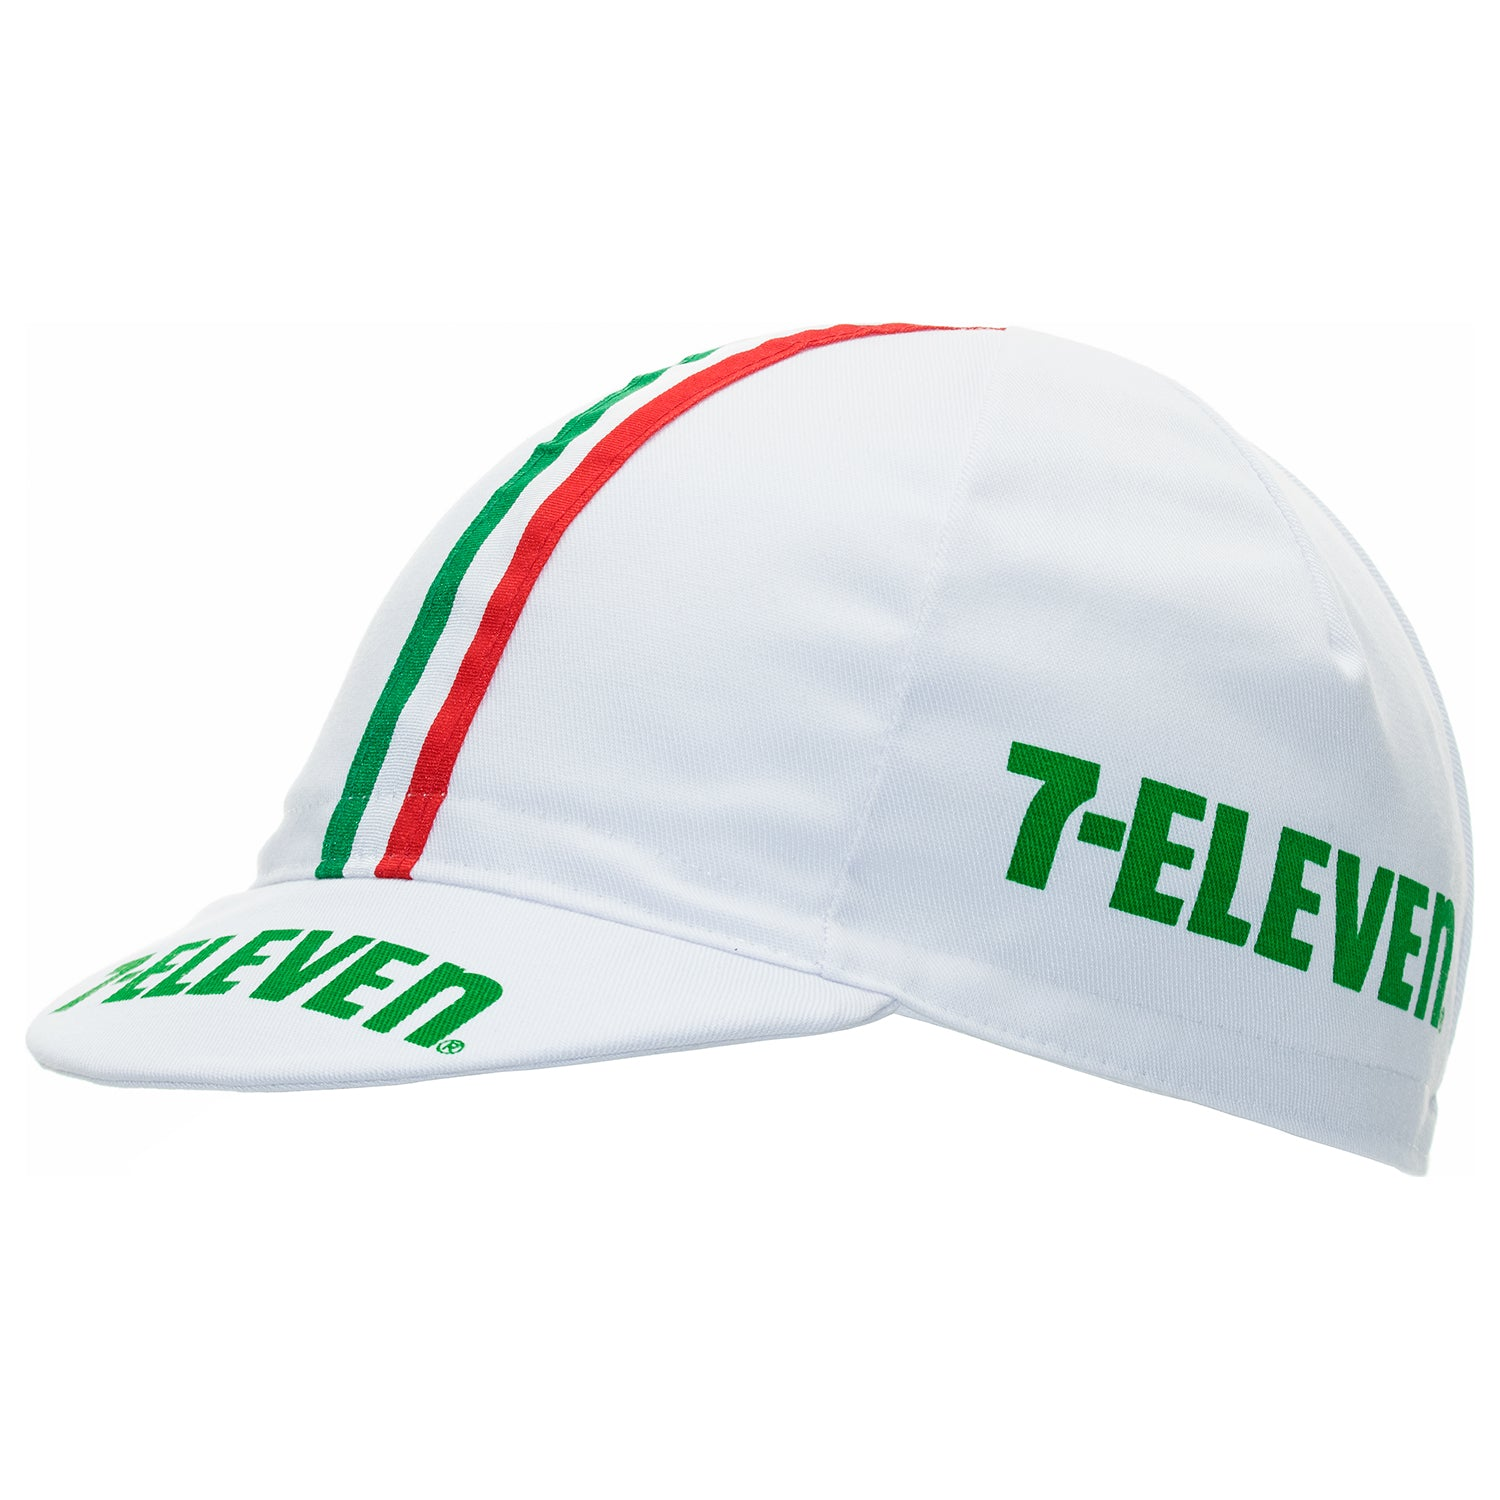 7-eleven cotton cap